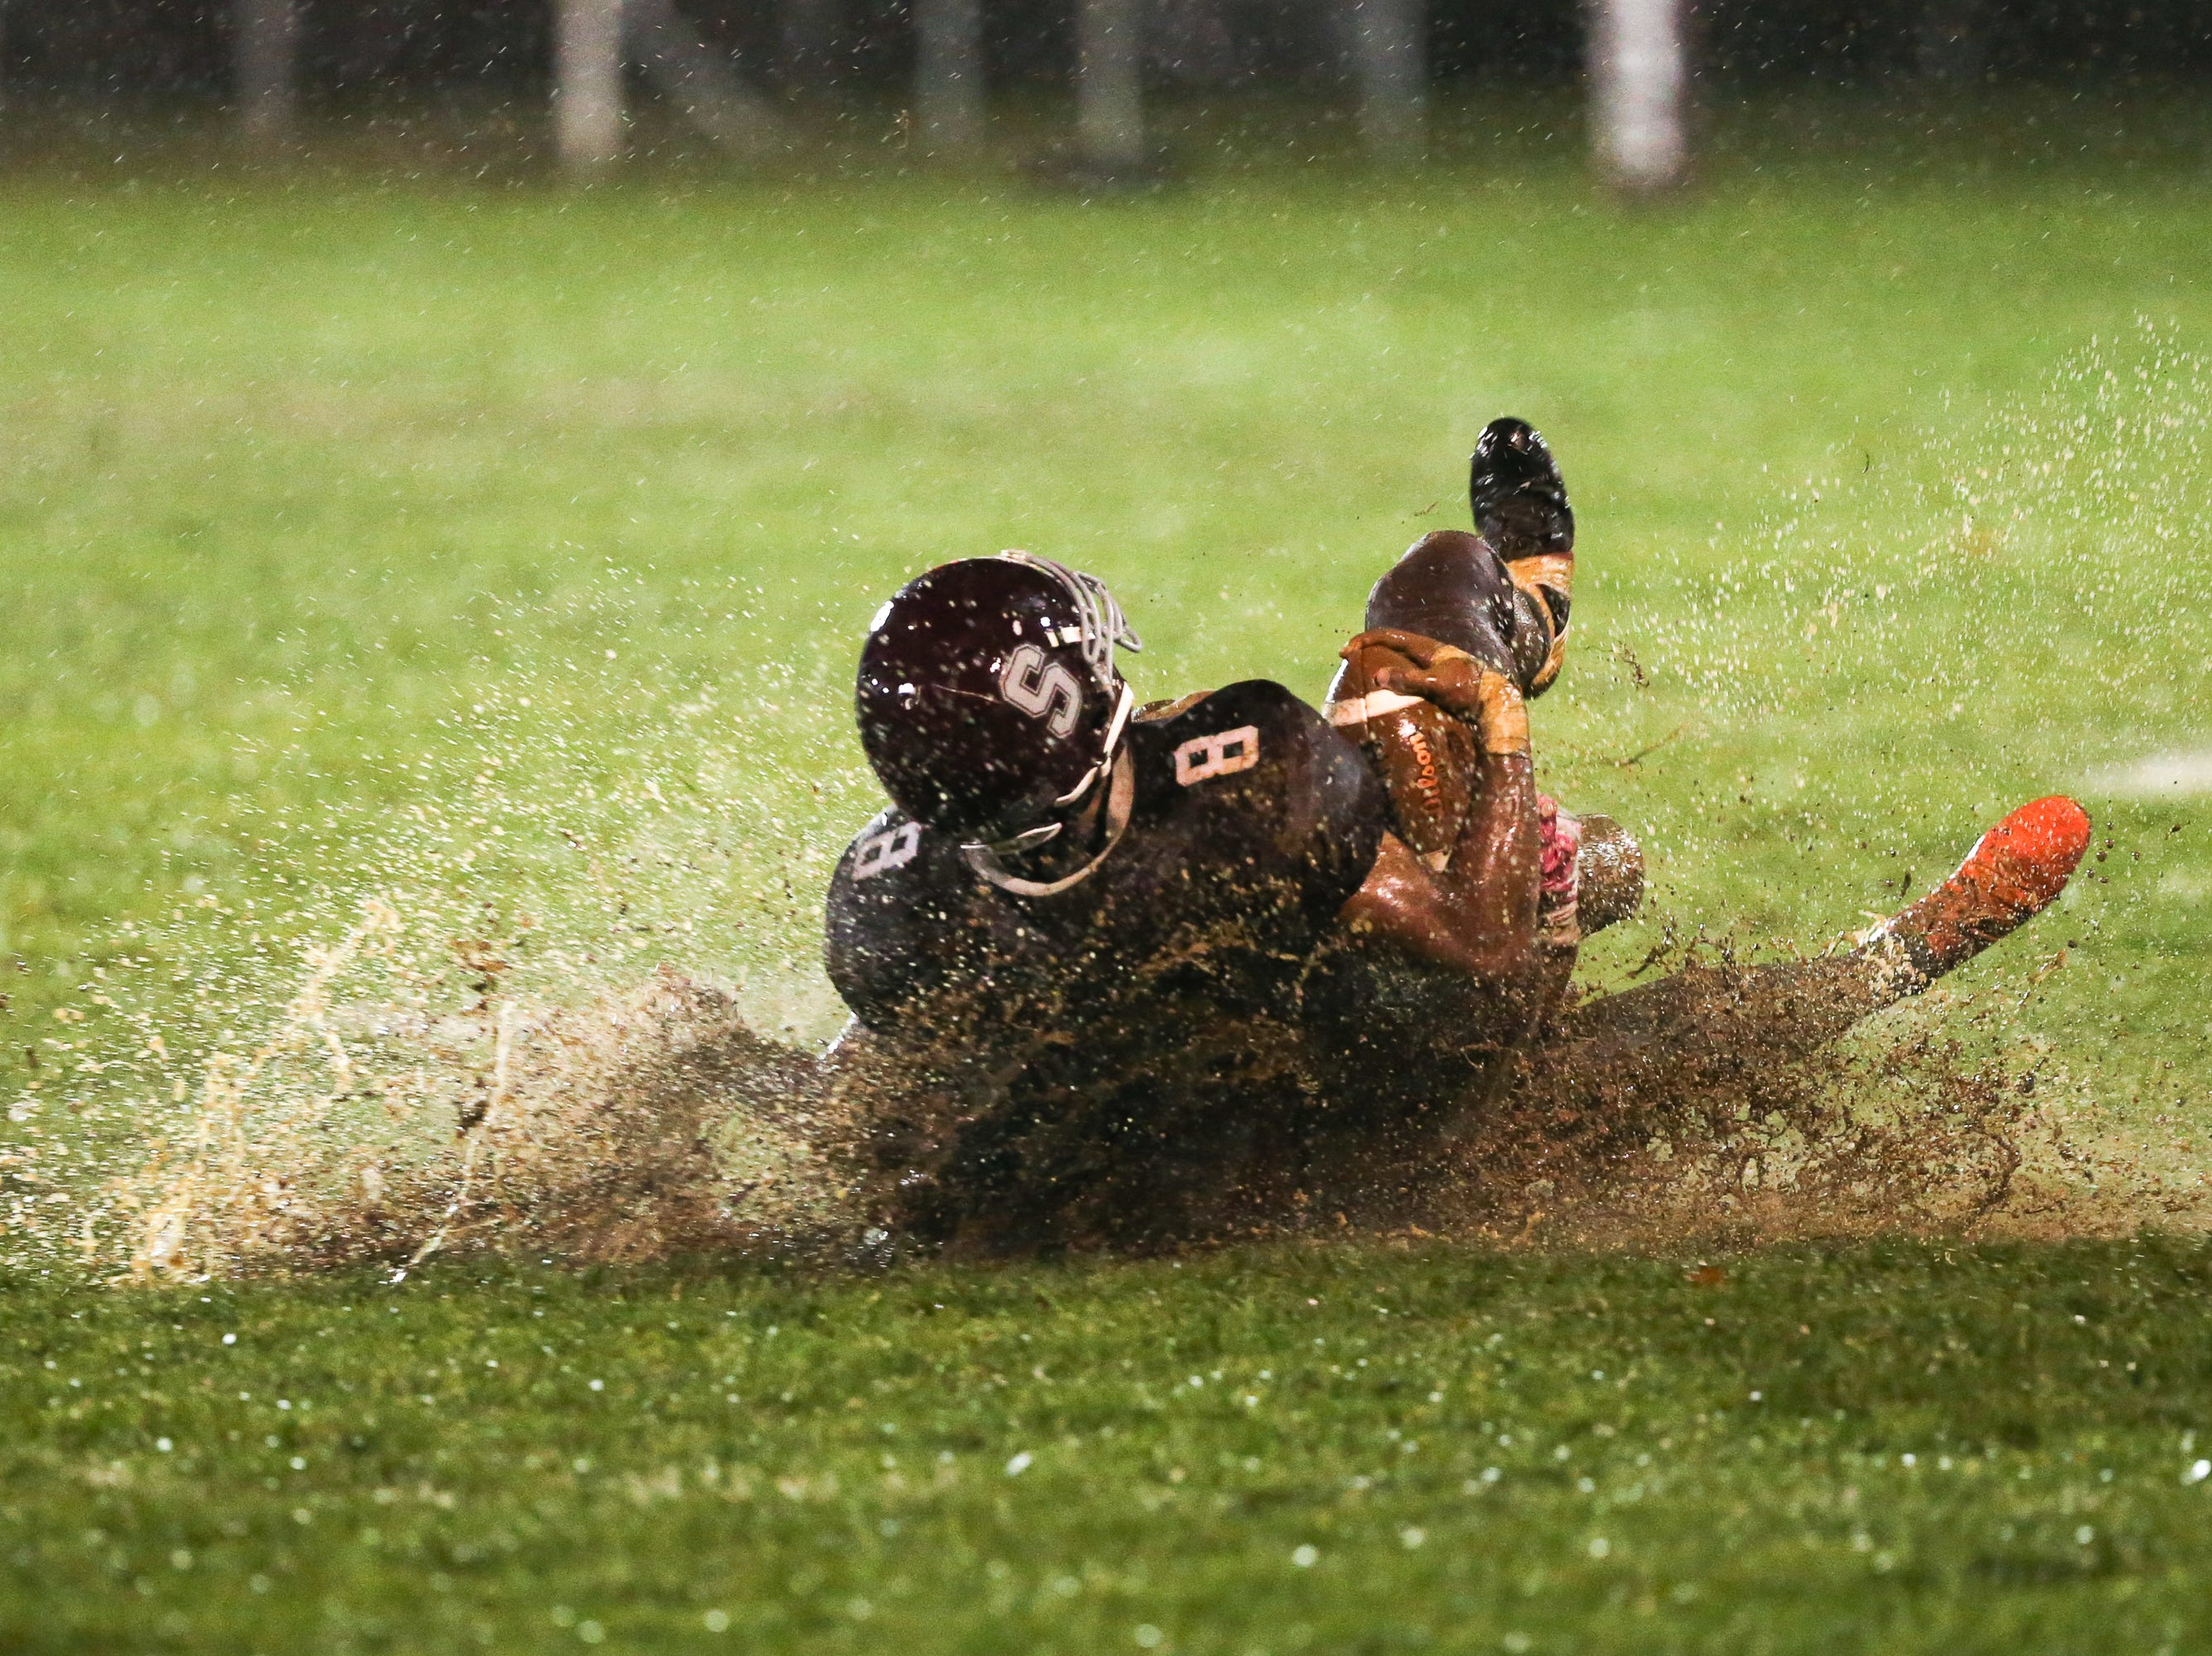 Senior Adam Houser slides through muddy grass while holding the ball. The Shippensburg Greyhounds defeated Northeastern, 6-0, in a playoff game in Shippensburg on Friday, Nov. 2, 2018.